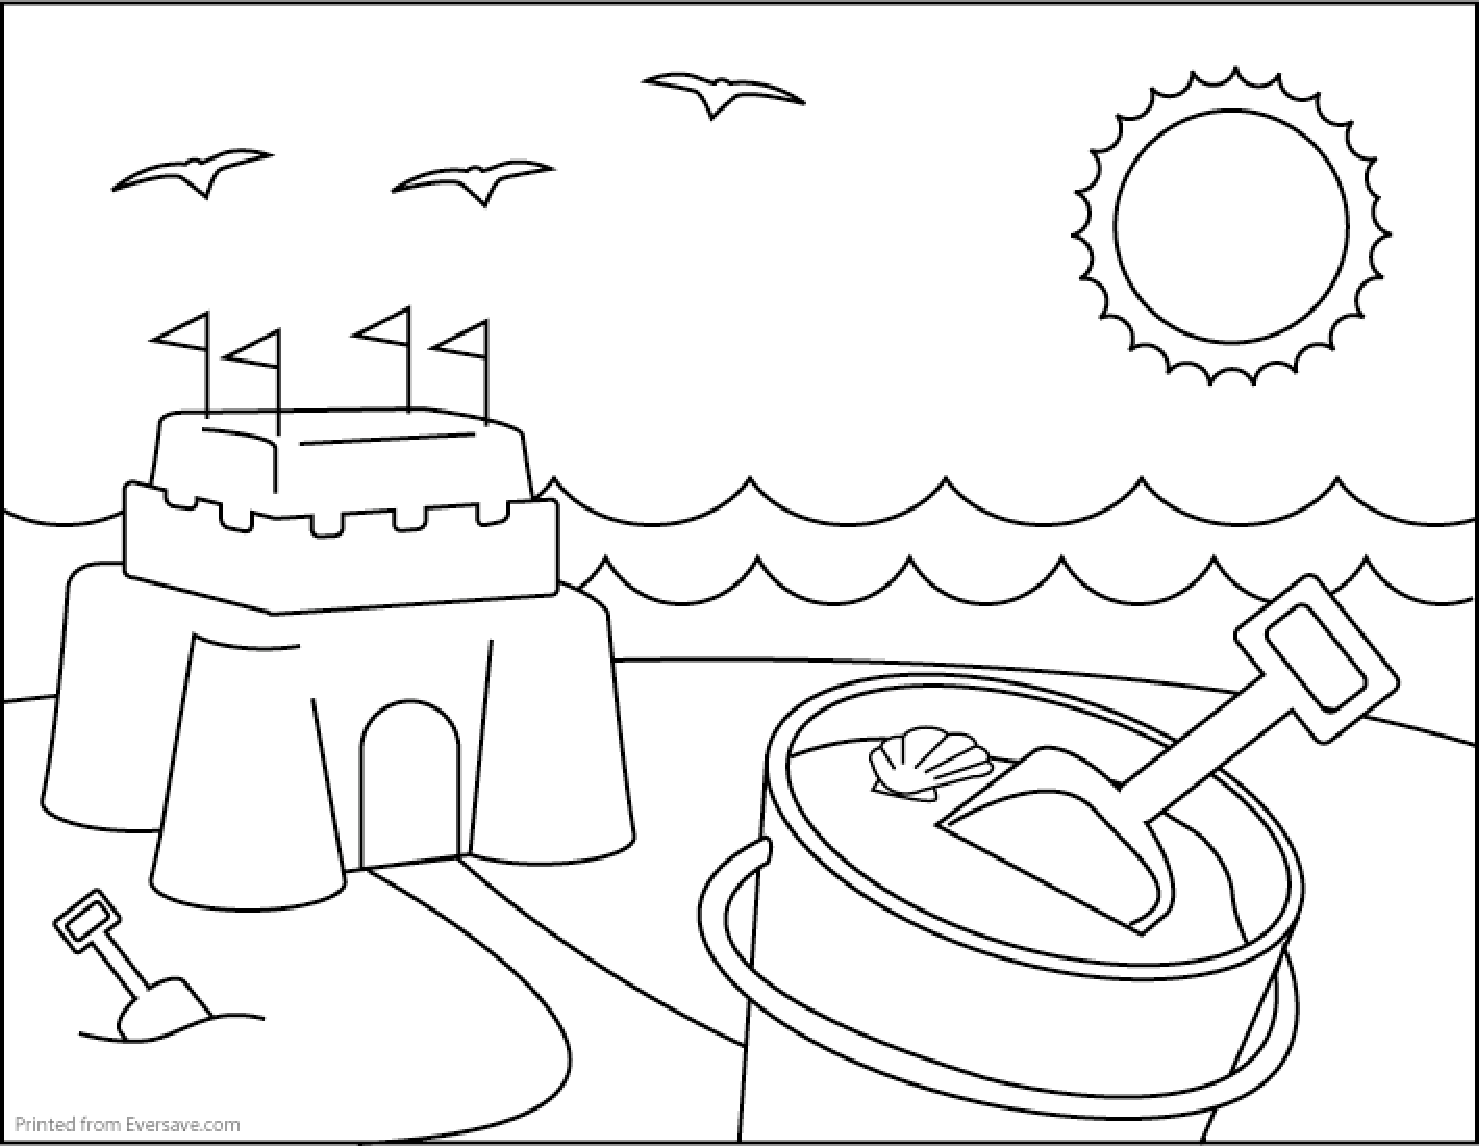 summertime coloring pages summer holiday coloring pages summertime pages coloring